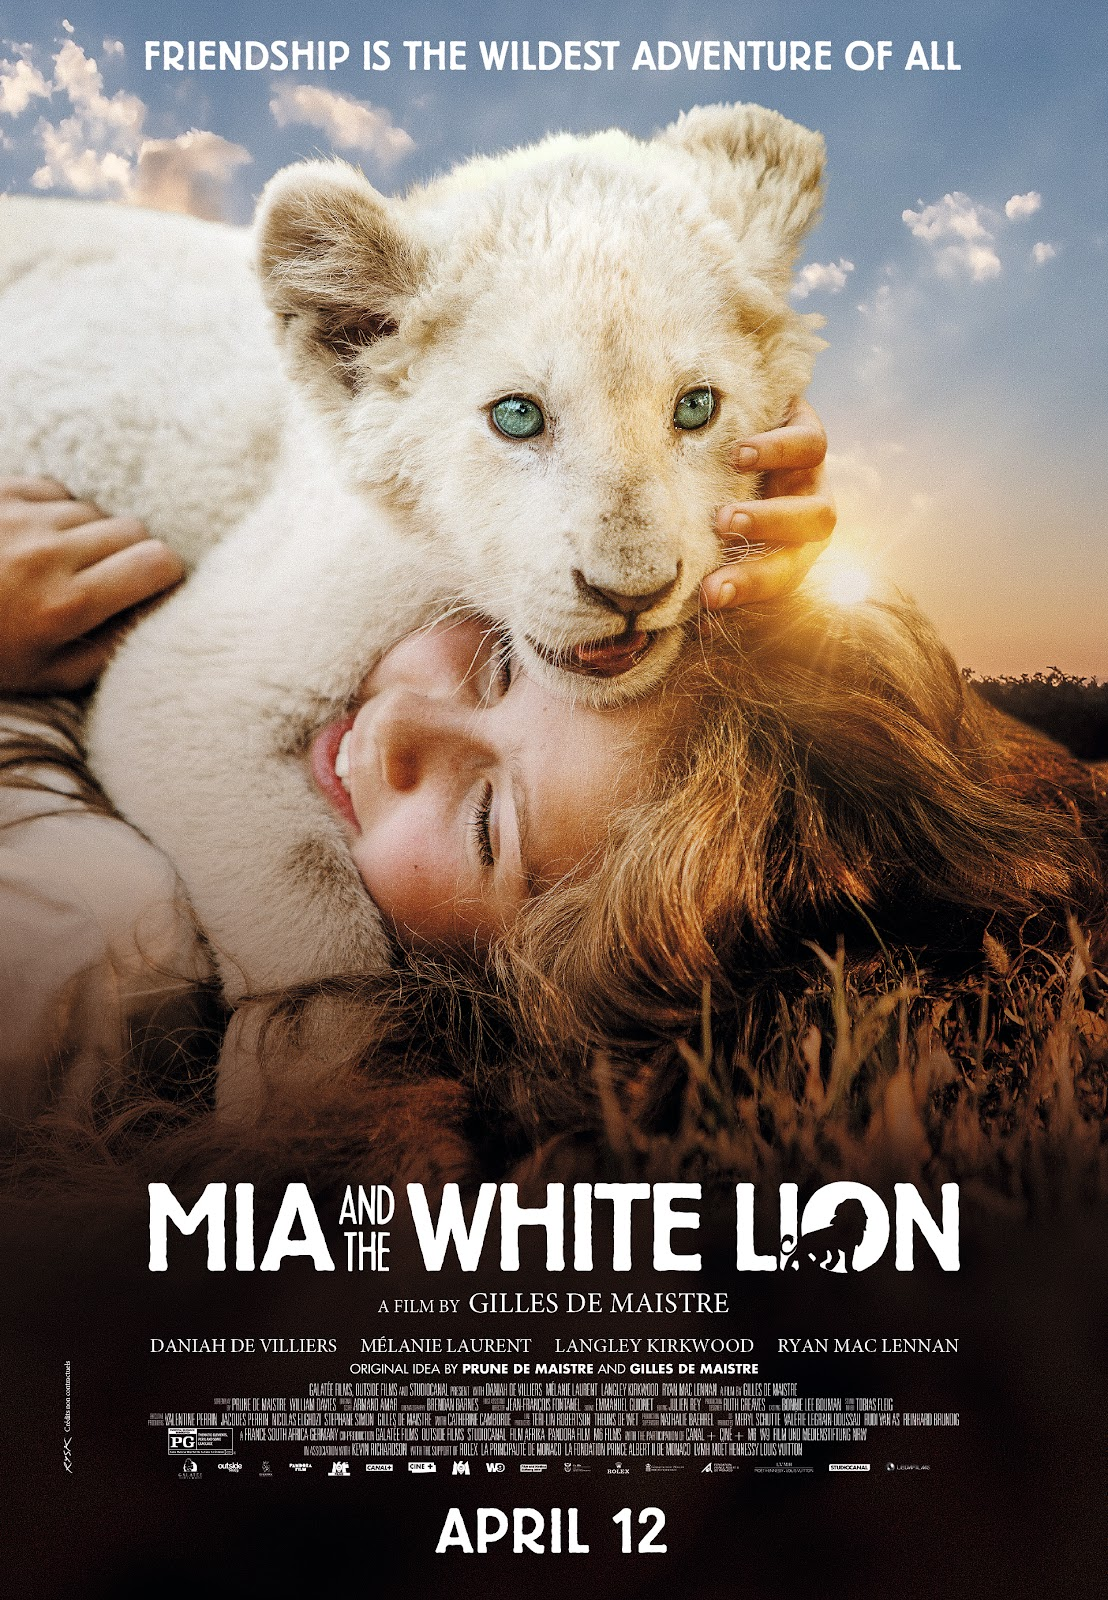 Official movie poster for Mia and the White Lion, opening in U.S. theaters, April 12, 2019.